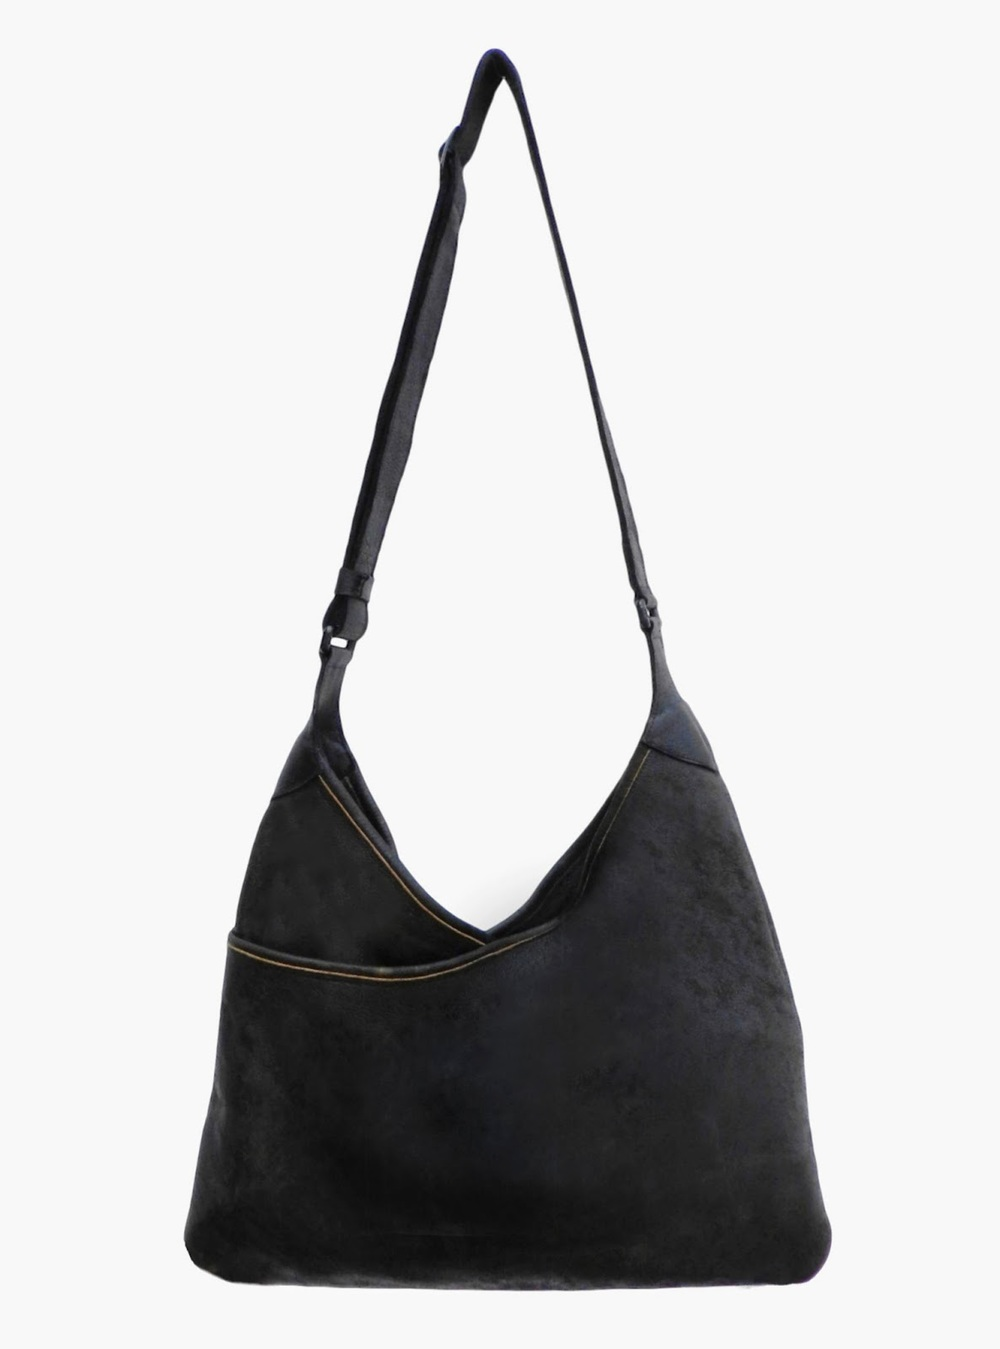 Lily and Lola 'Lisa' Burnt Black Leather